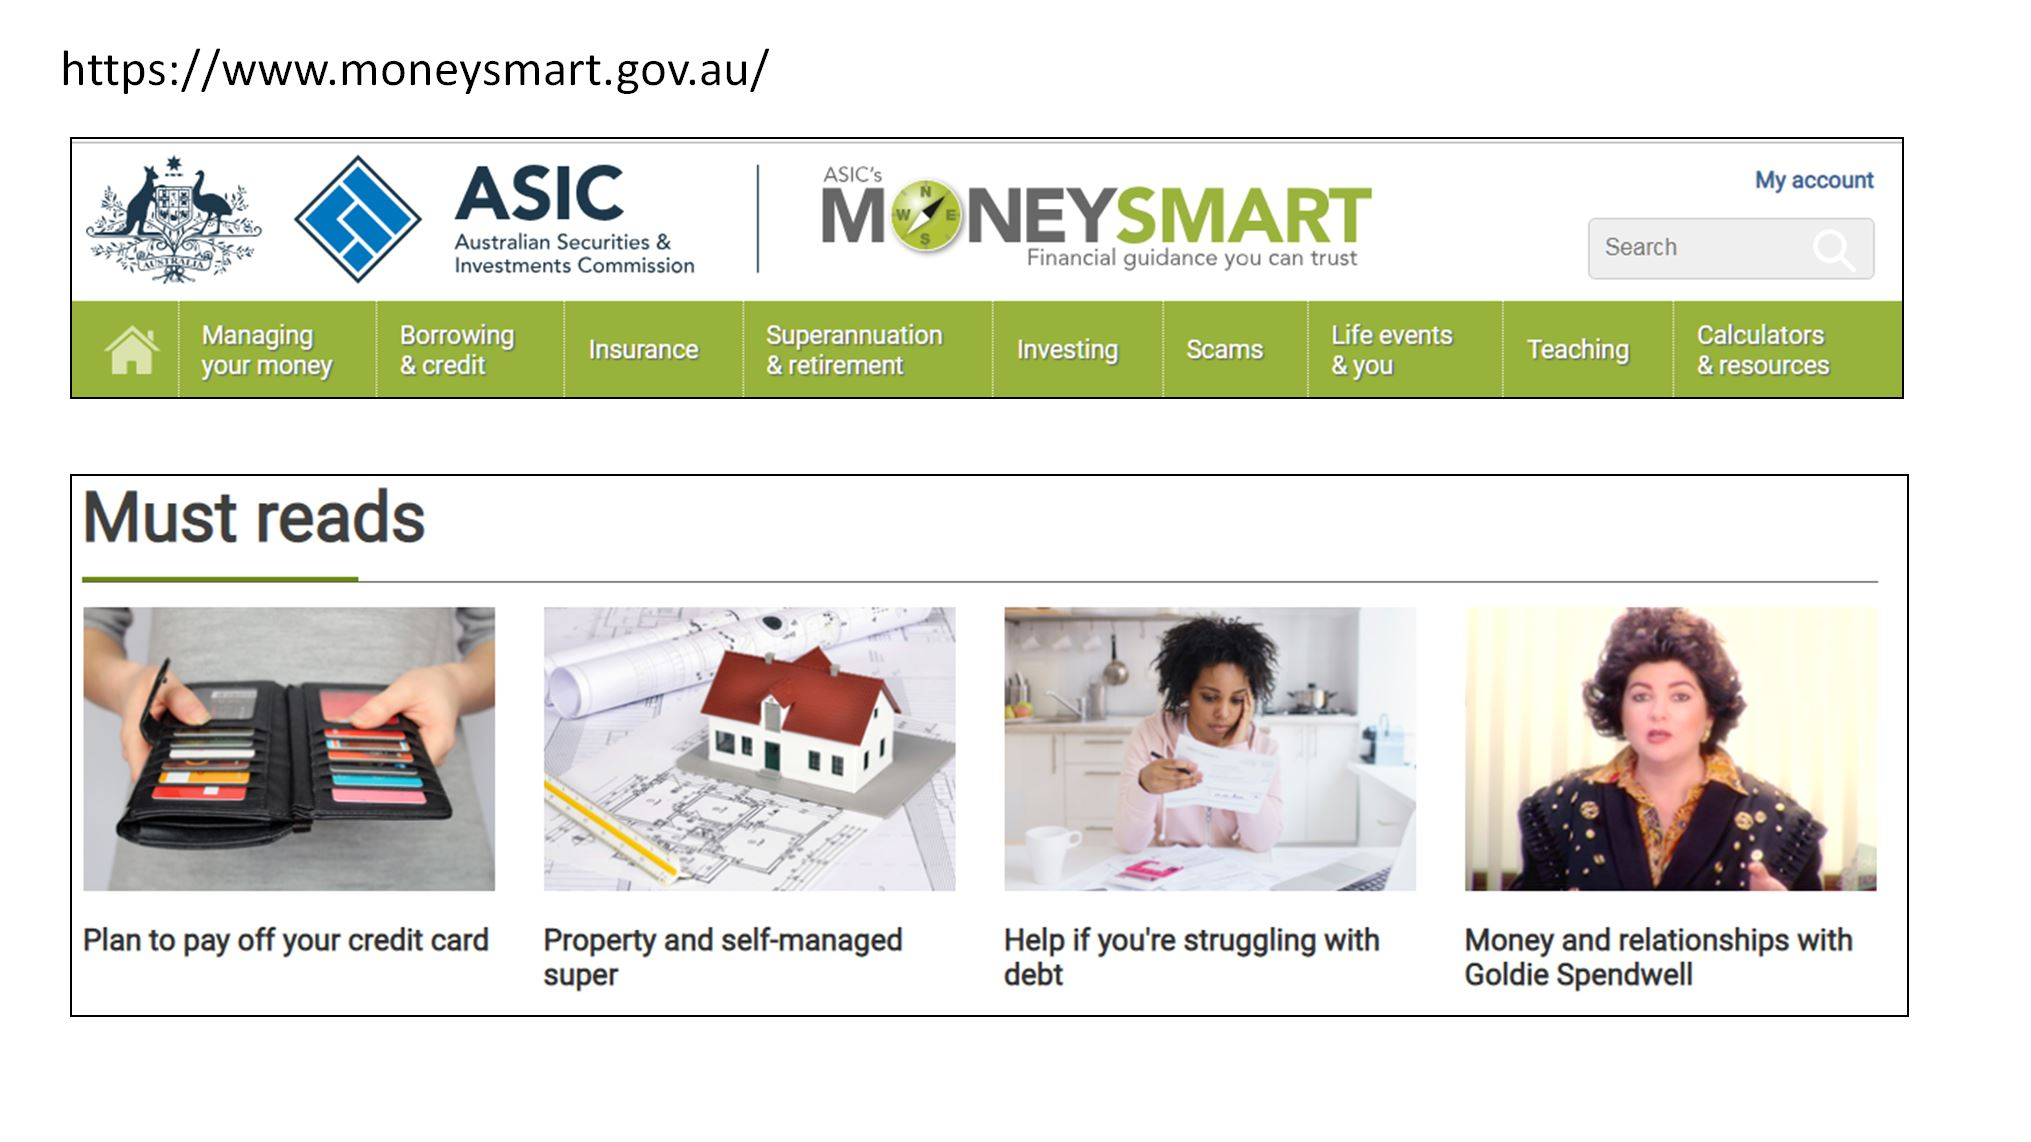 ASIC Moneysmart website